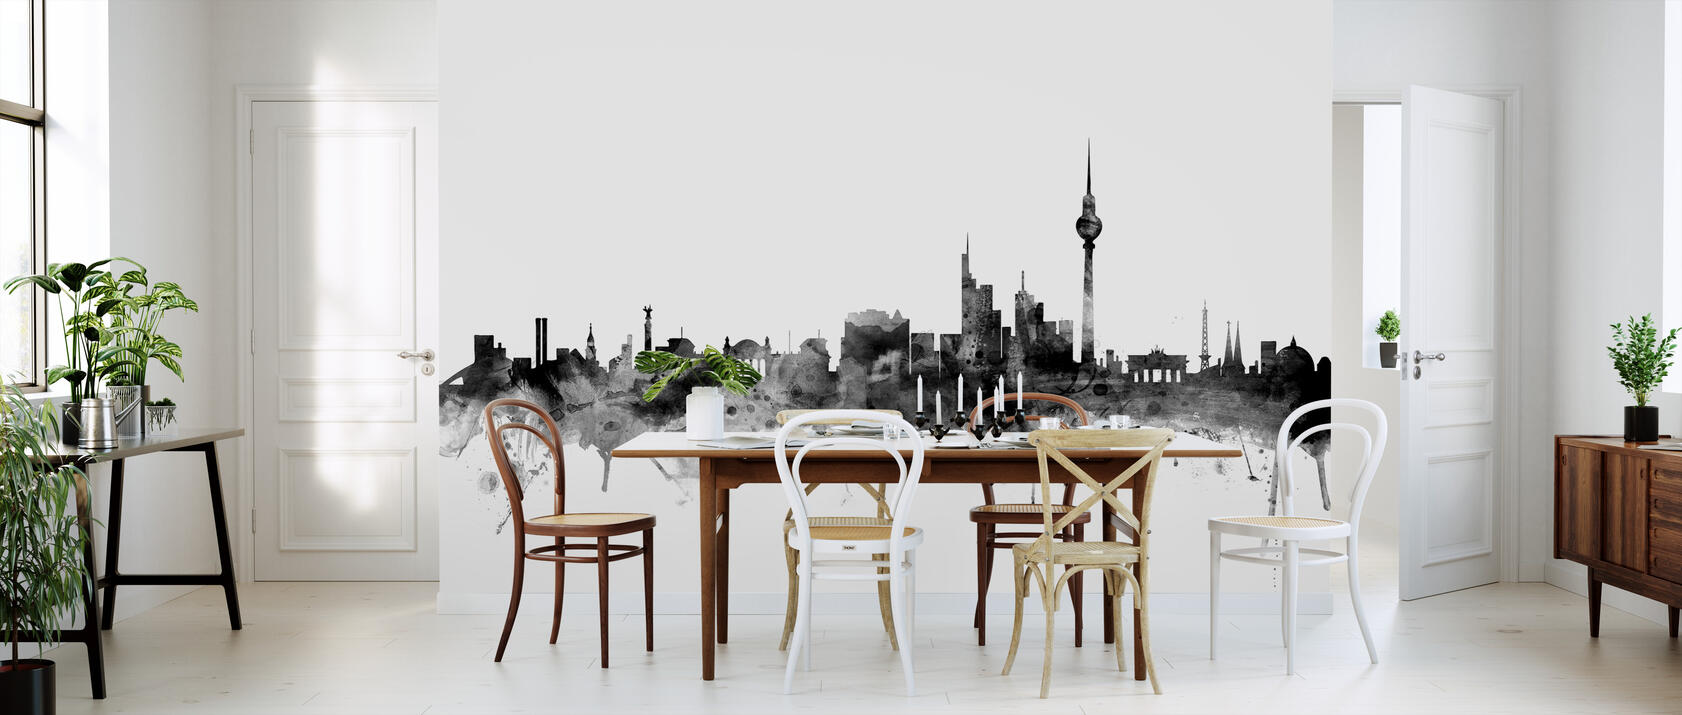 berlin skyline black beliebte fototapete photowall. Black Bedroom Furniture Sets. Home Design Ideas